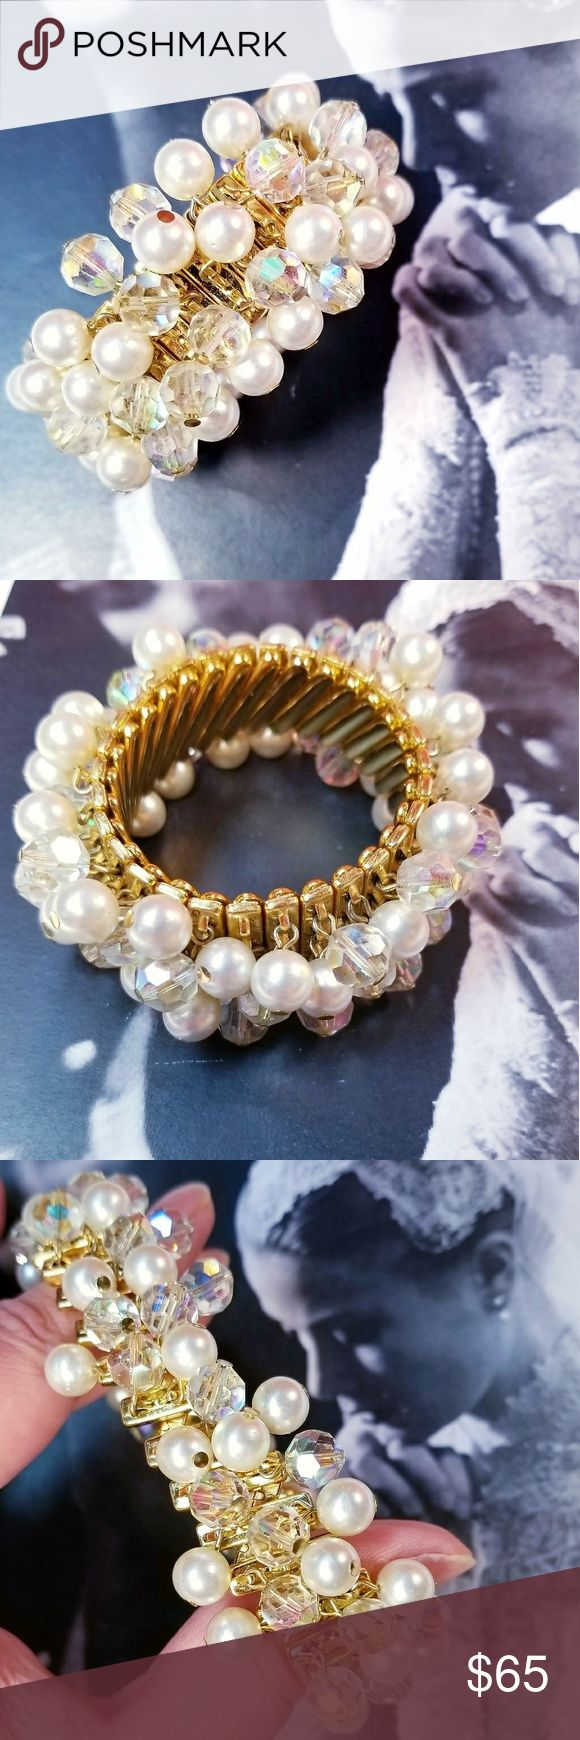 "Vintage Aurora Borealis faux pearl bracelet. Vintage rainbow Aurora Borealis crystal and faux pearl accordion expansion stretch bracelet. Gold tone hardware. Stamped Japan on interior. Stretches to about 10"" and is just over 1"" wide. Matching earrings available. Perfect for weddings or other formal events. All crystals and pearls are present and intact. Excellent vintage condition reasonable offers welcome and accepted. Add to a bundle and I'll offer you a great deal Vintage Jewelry…"